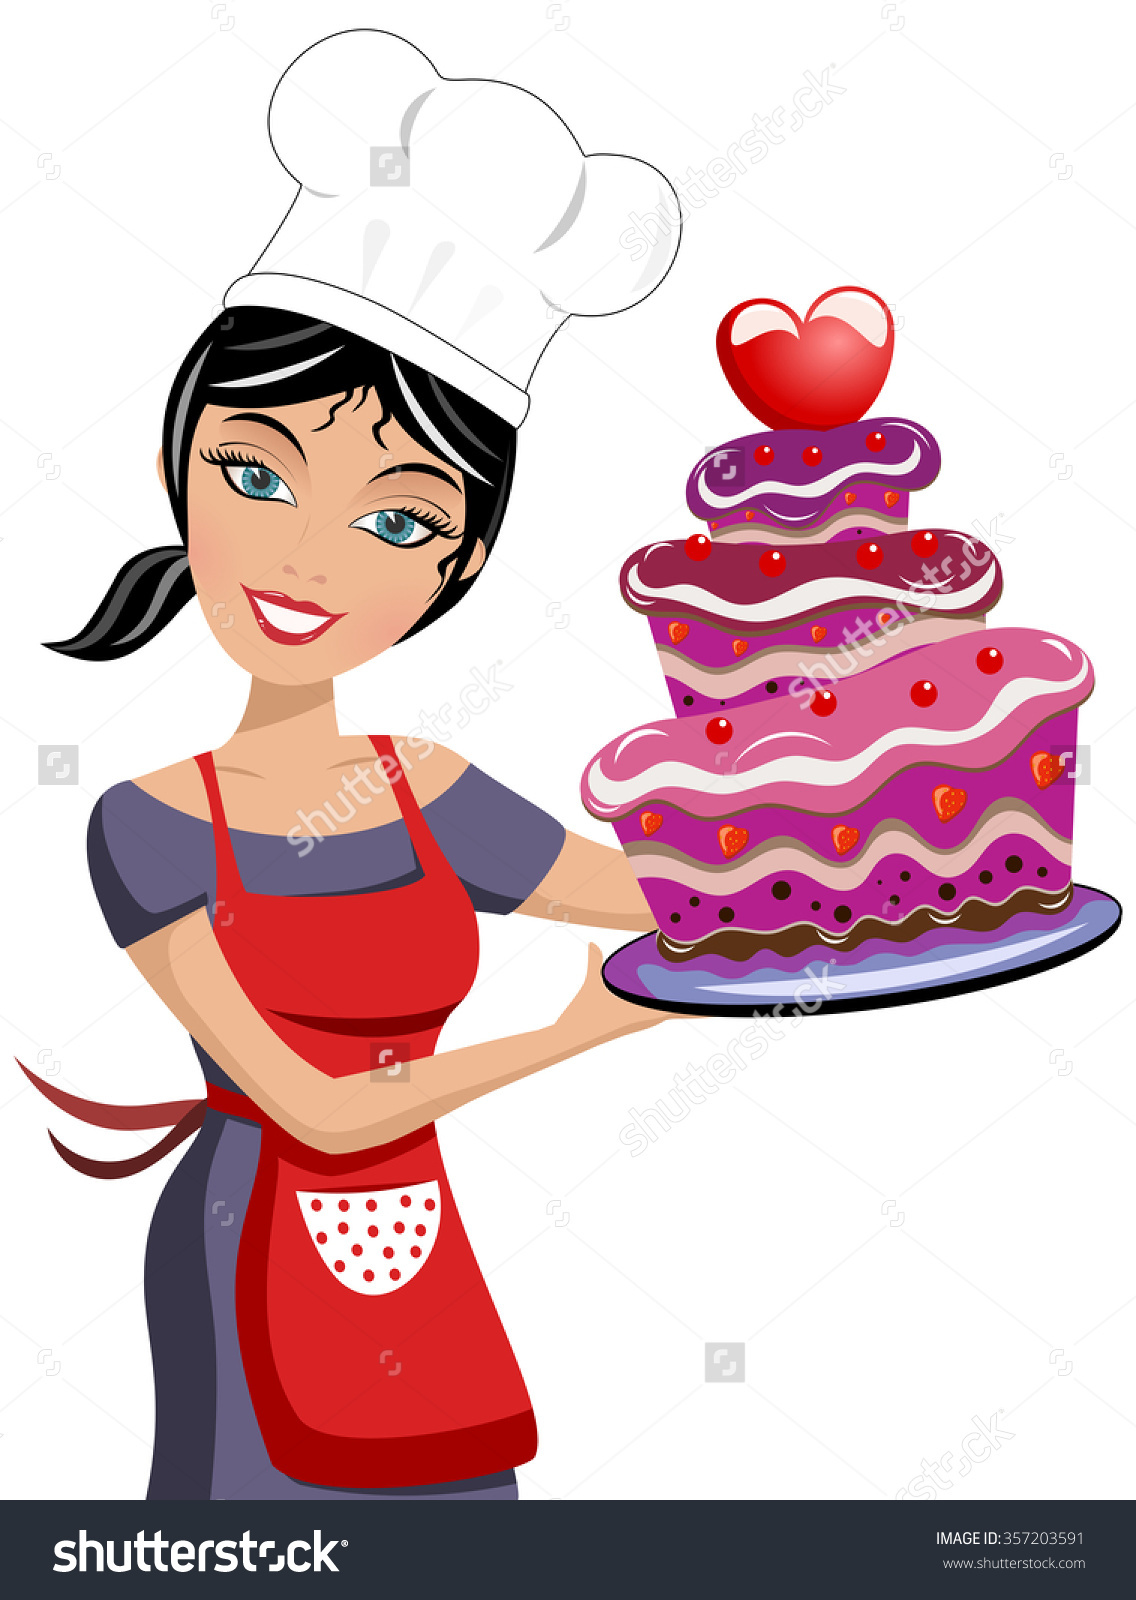 Baking clipart pastry. Female chef station